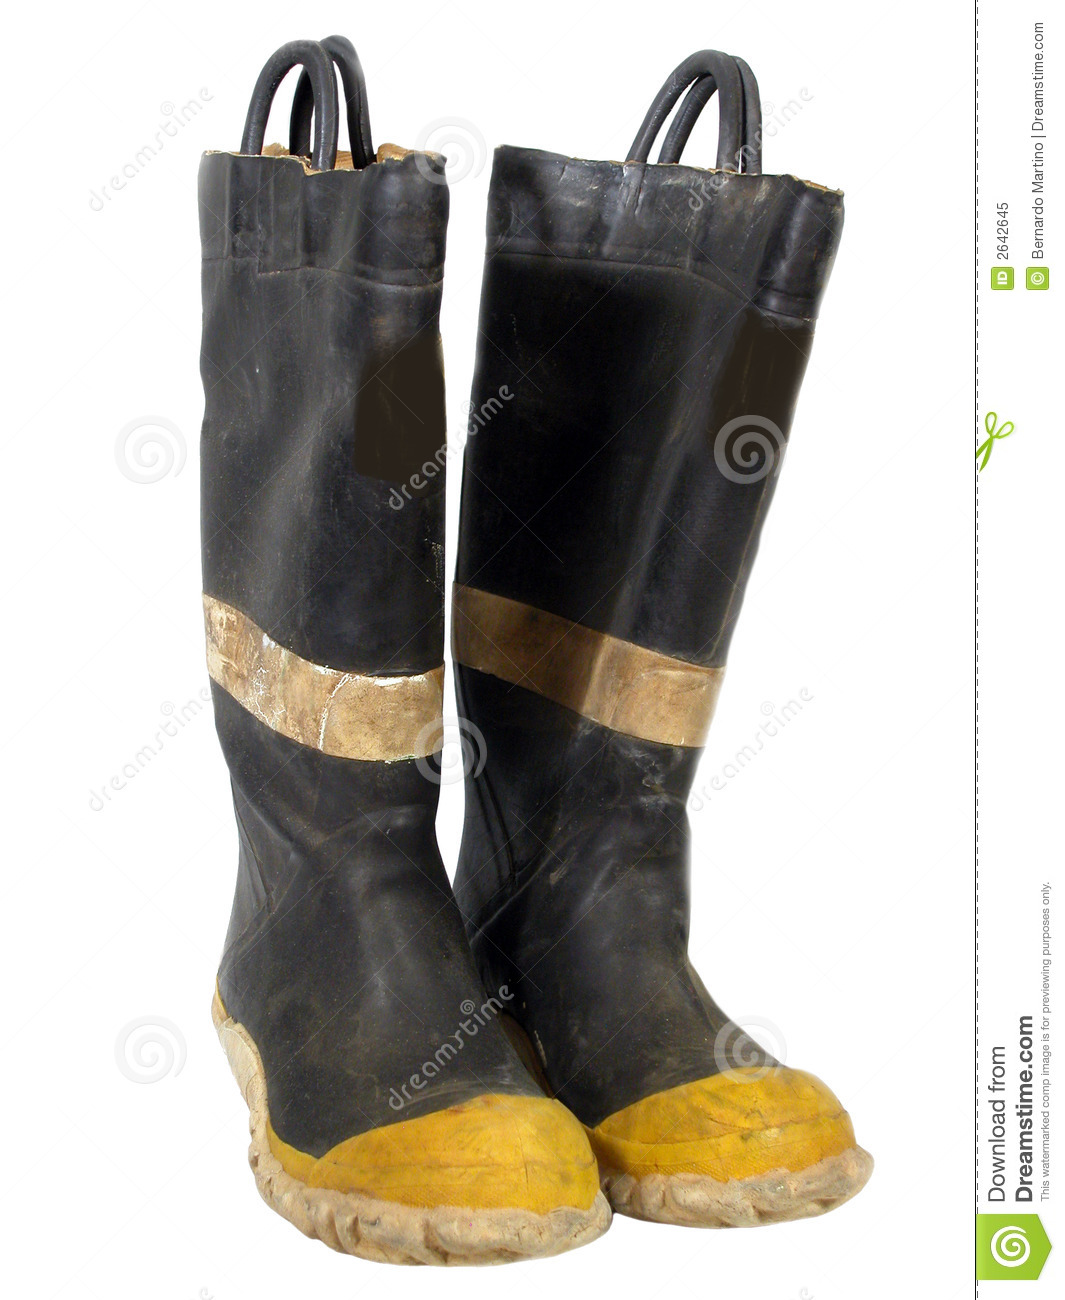 Old Fire Boots Stock Image Image Of White Waterproof